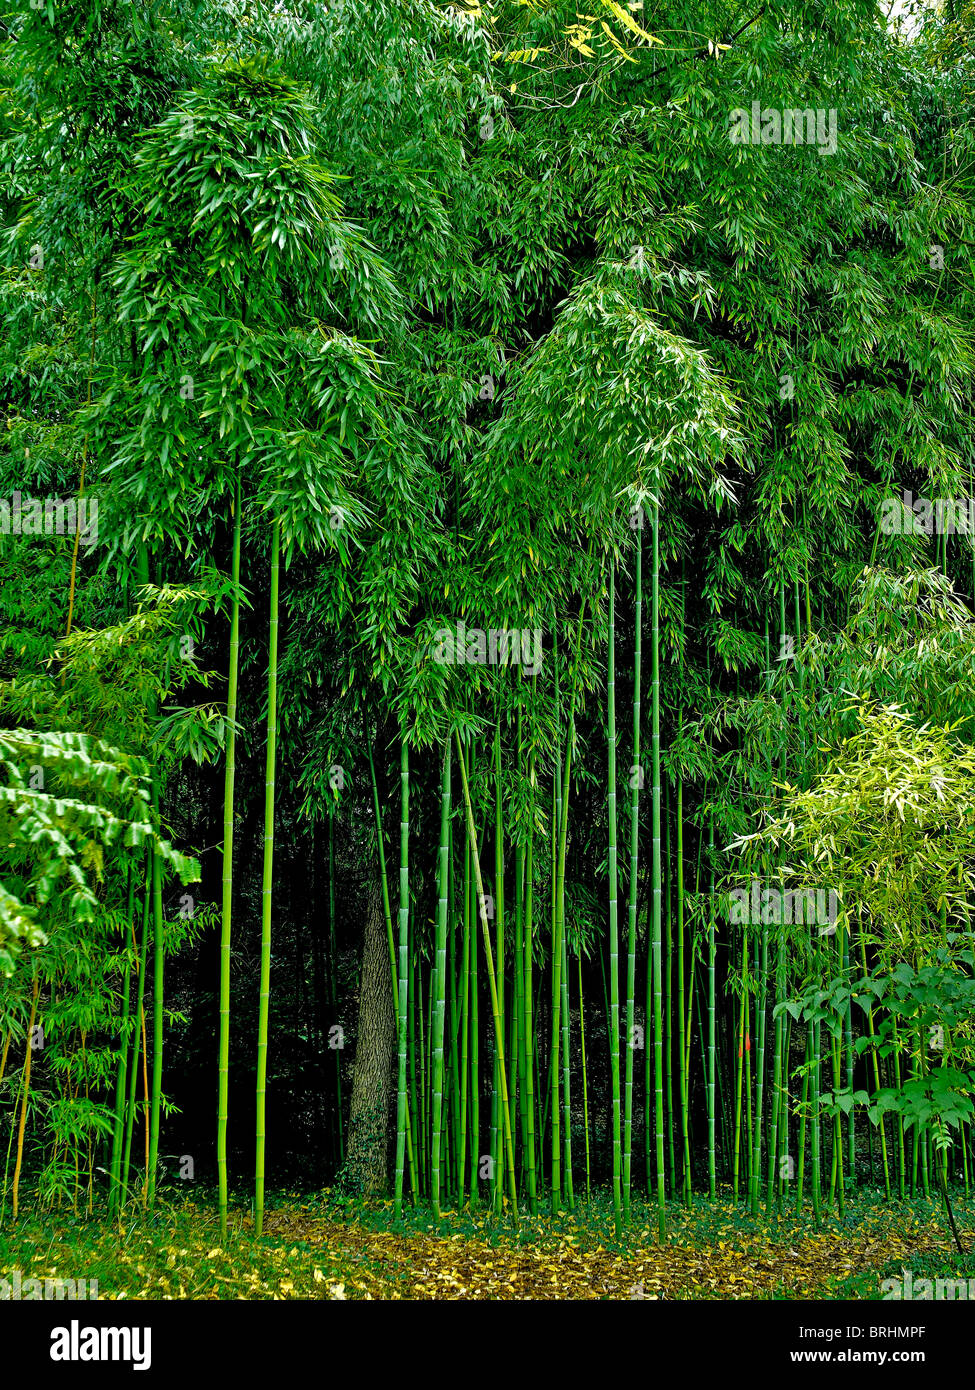 The Amazing Growth Of The Bamboo Phyllostachys Viridiglaucescens At